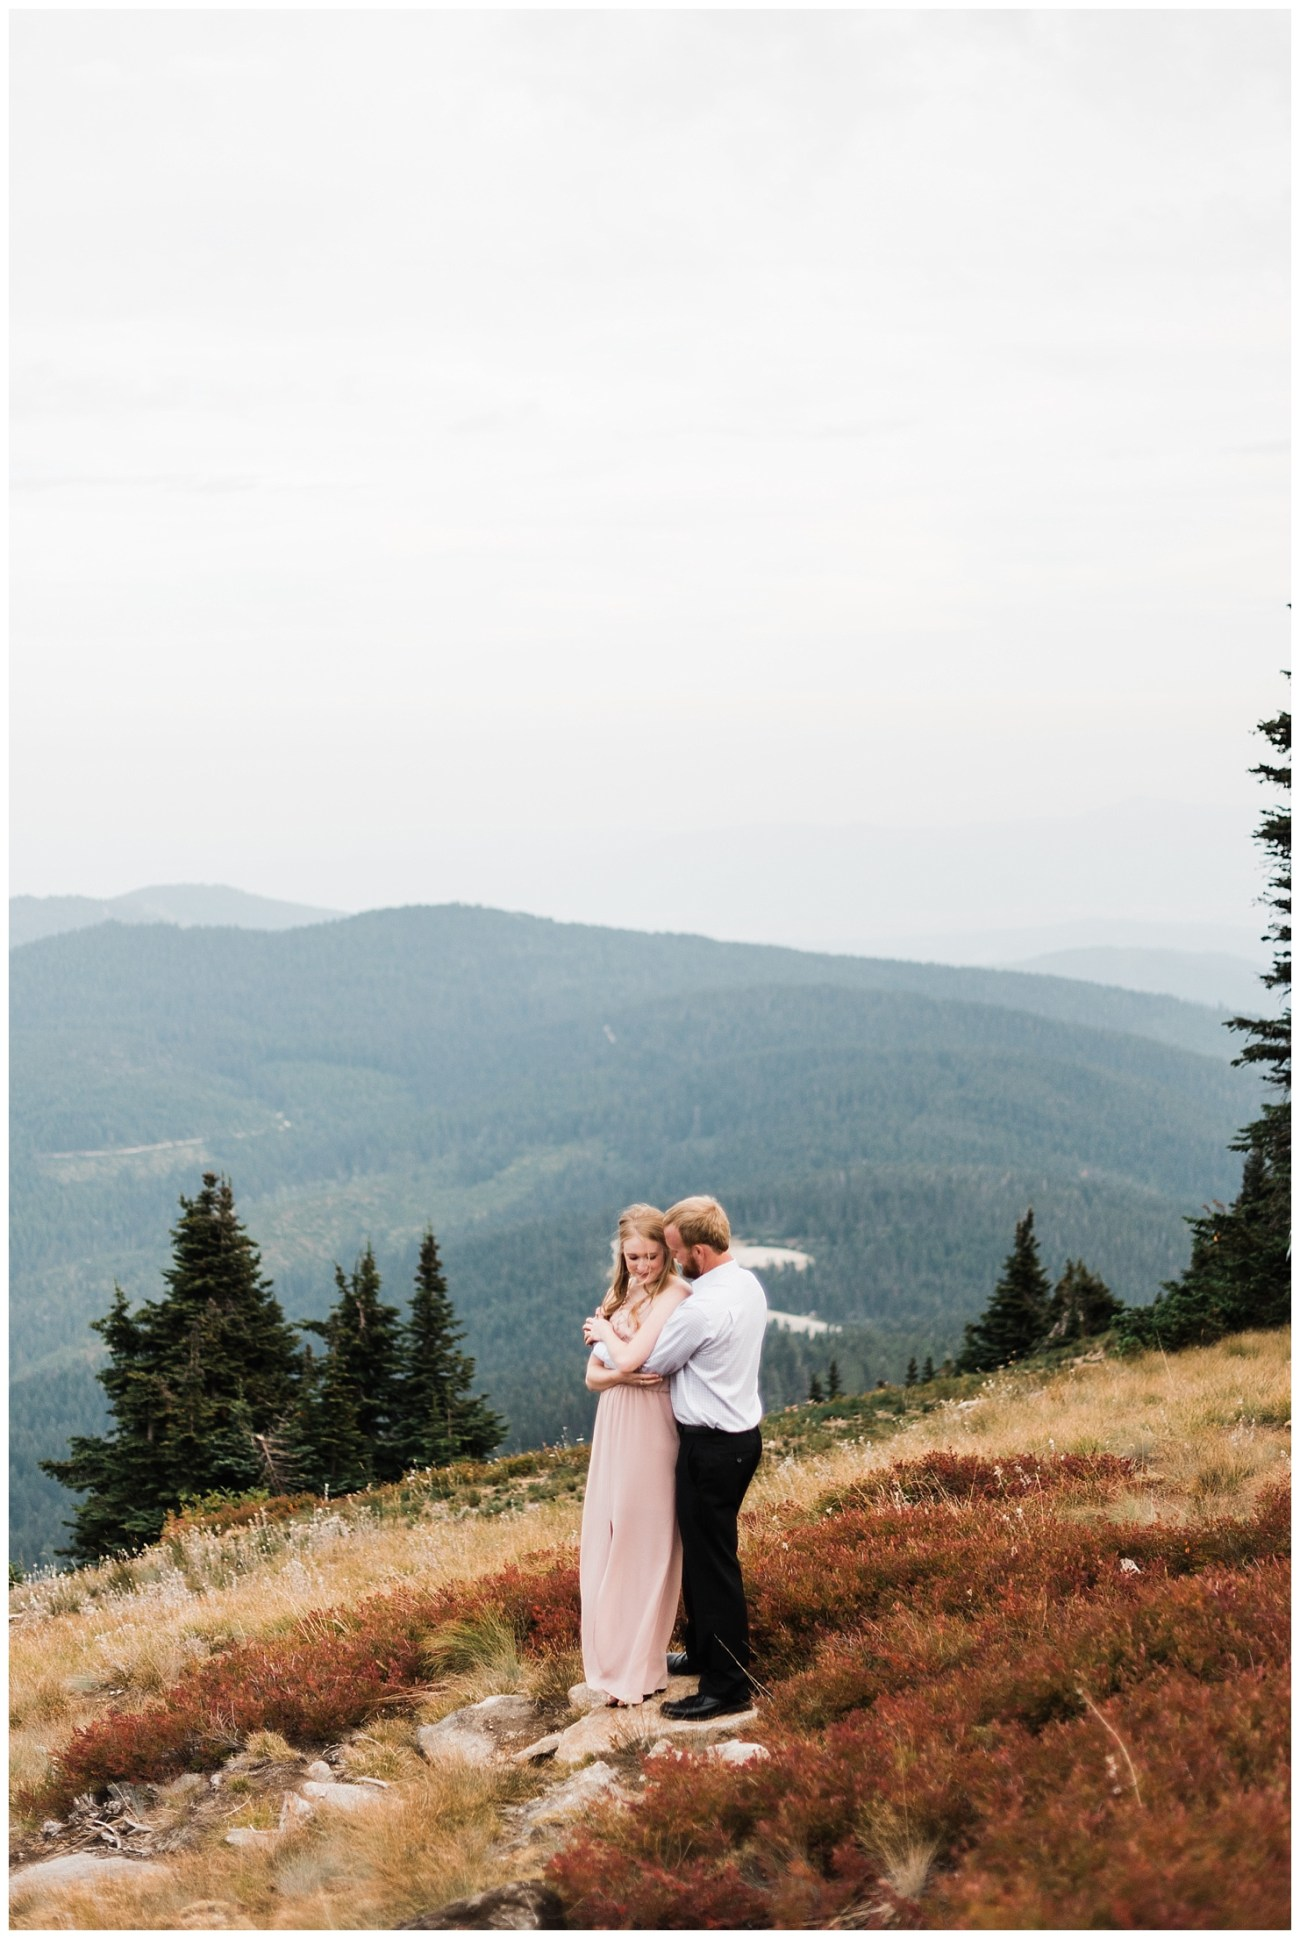 Mt Spokane Engagement Session by Forthright Photo